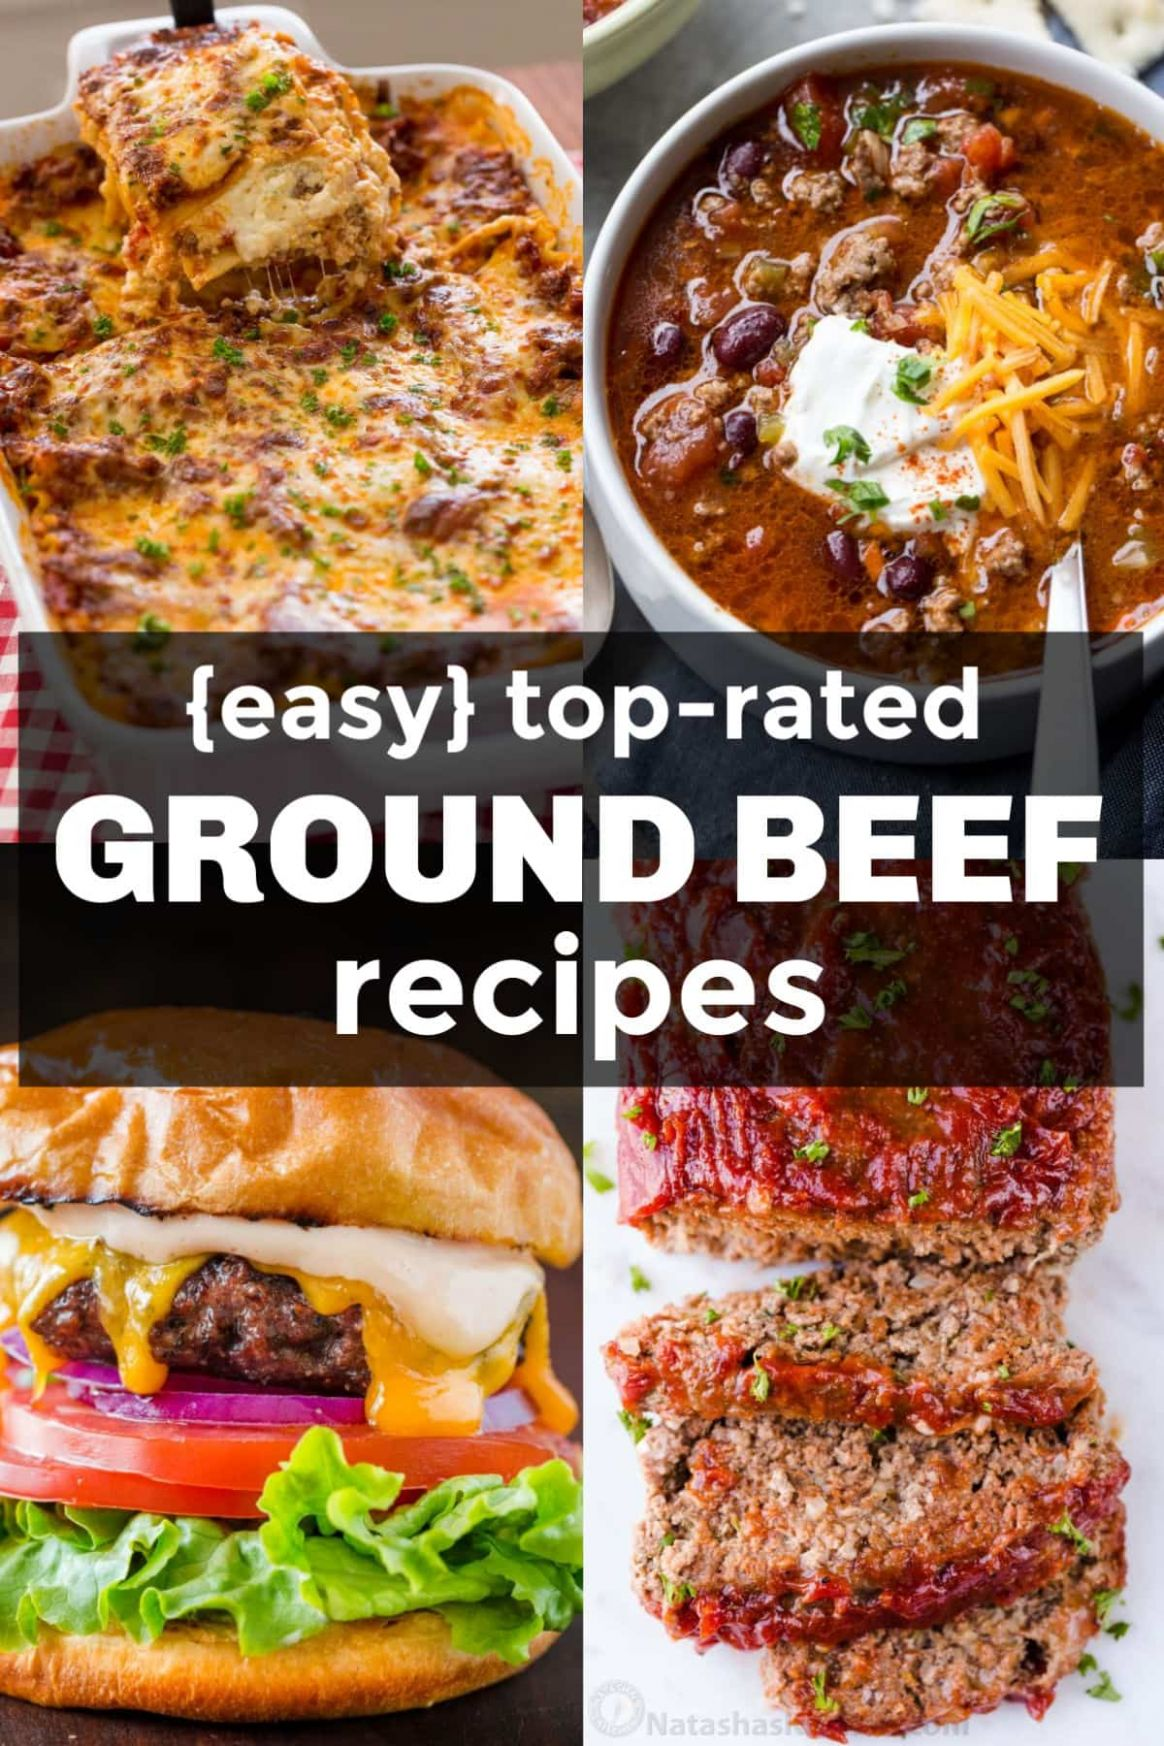 How to Cook Ground Beef for Ground Beef Recipes - Ground Beef Recipes Quick